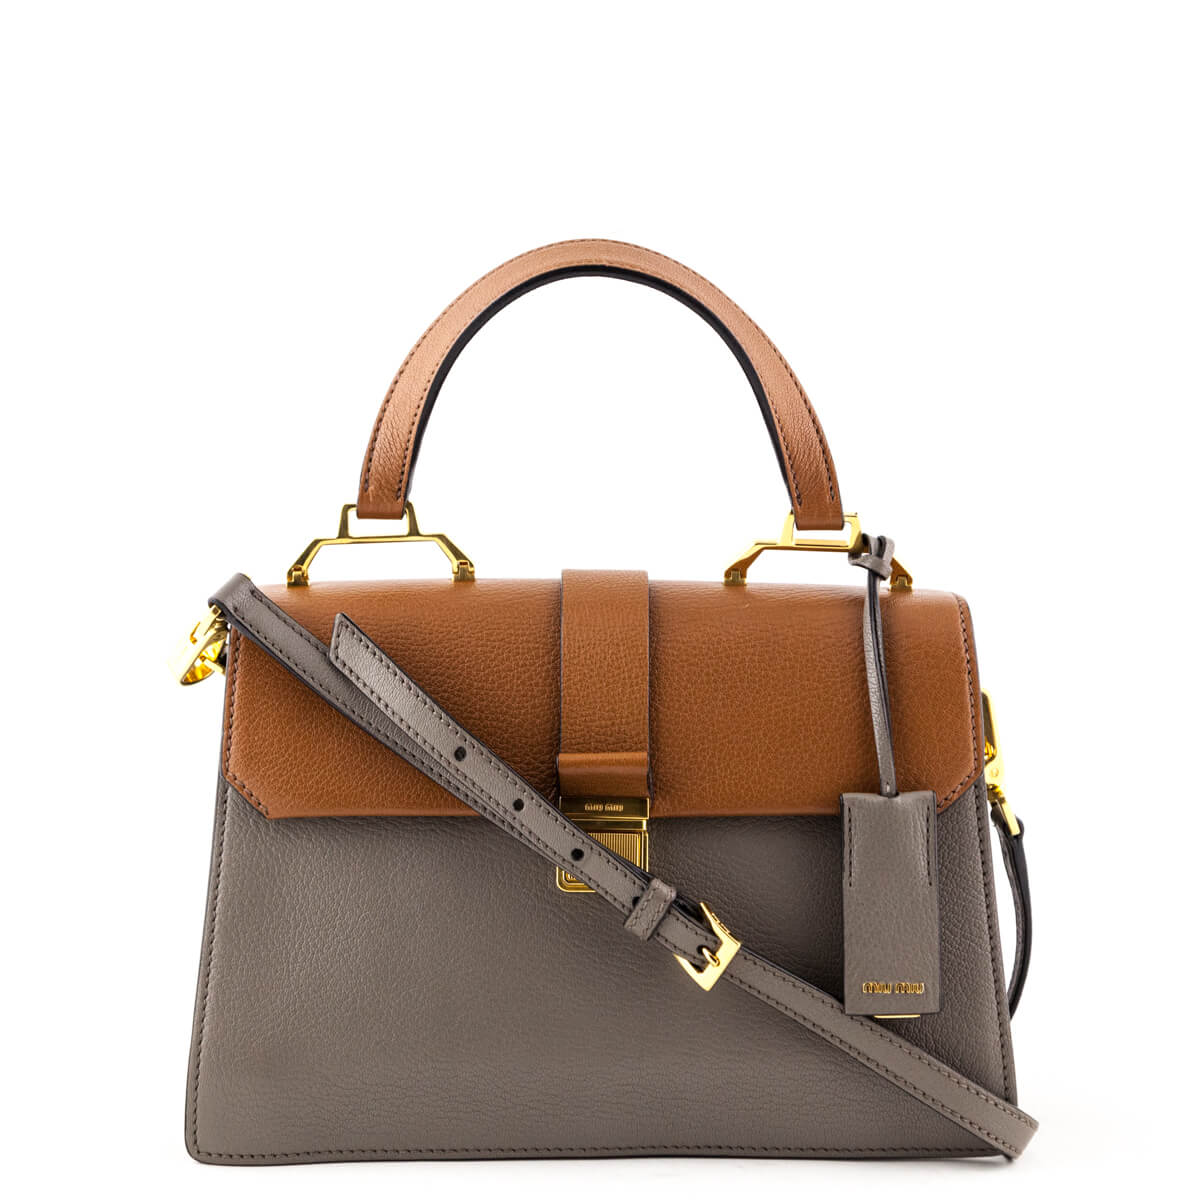 Miu Miu Brown and Gray Madras Top Handle - LOVE that BAG - Preowned  Authentic Designer ... cb40076578bee